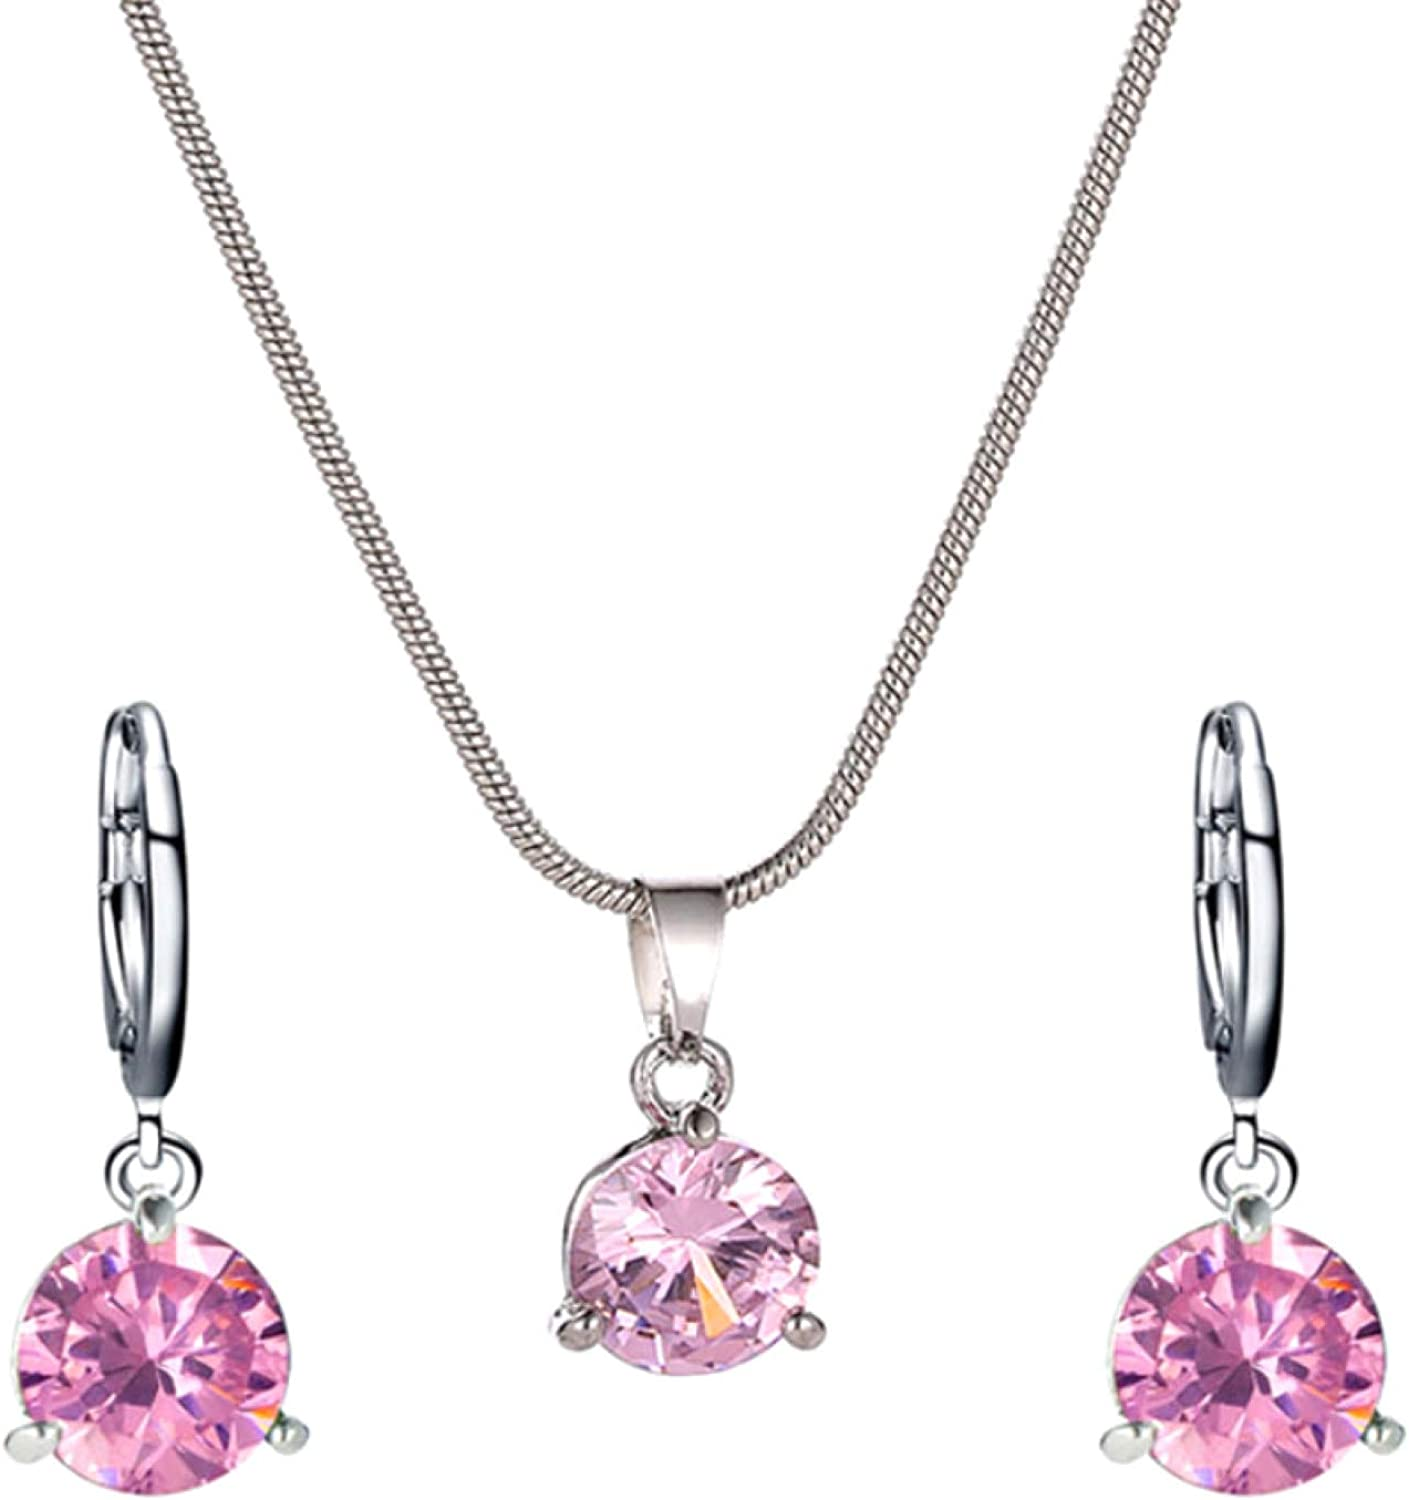 Bridal Jewelry Set for Wedding,Women Round Cubic Zirconia Pendant Chain Necklace Hoop Earrings Jewelry Set